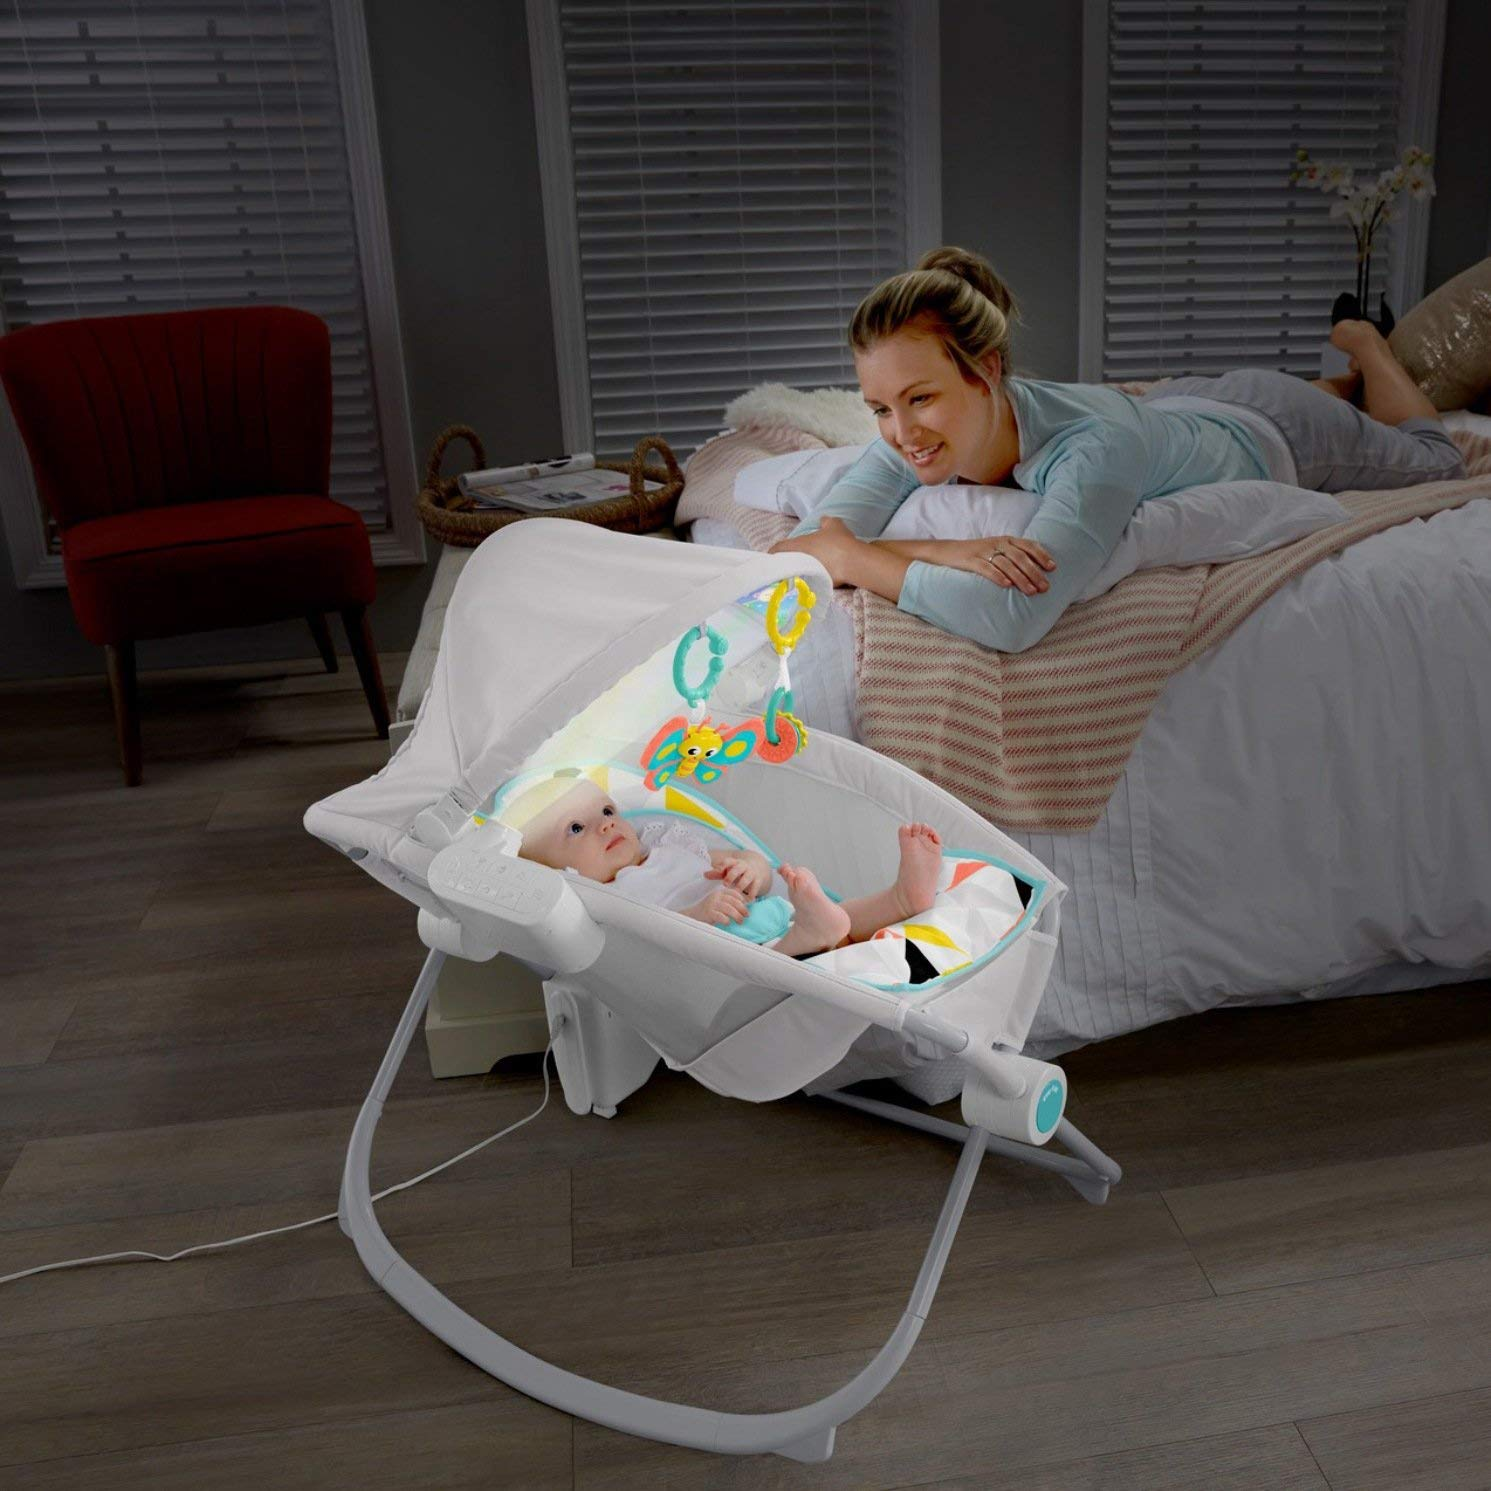 Fisher Price Premium Auto Rock N Play Sleeper With Just The Right